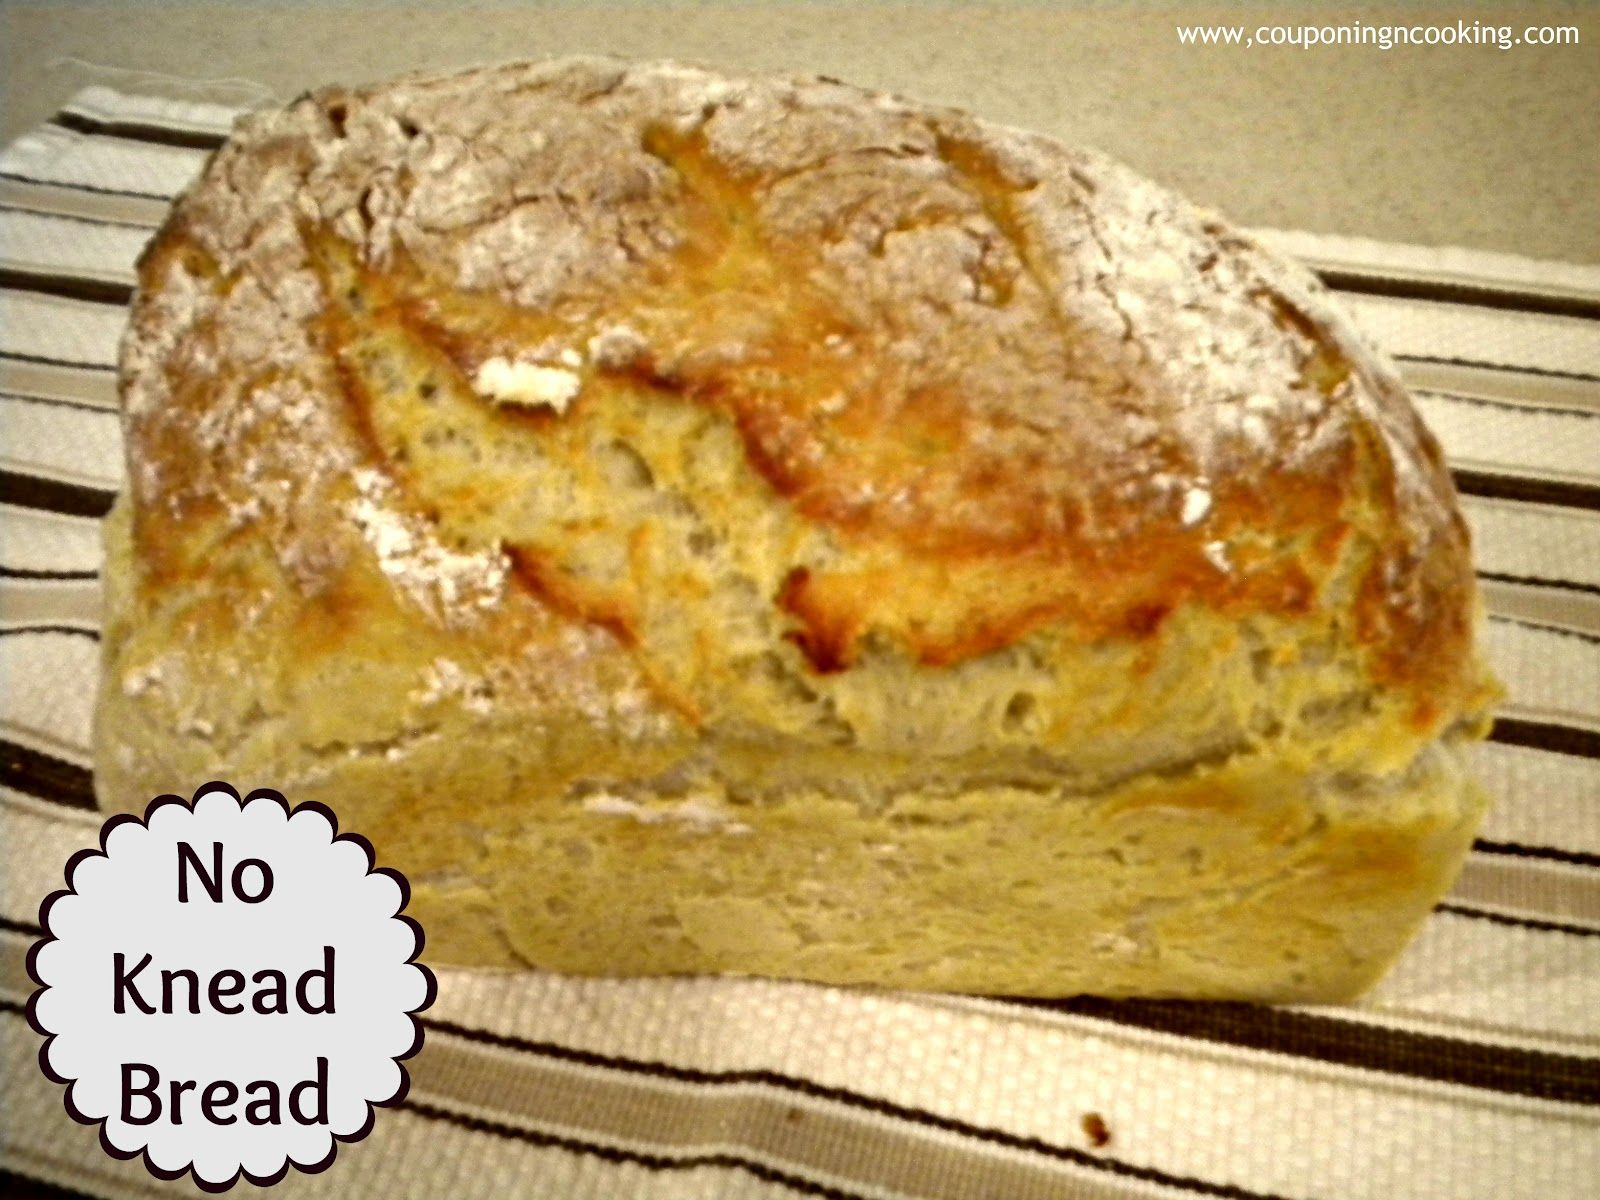 Couponing & Cooking: Homemade Bread Challenge: Simple No Knead Bread